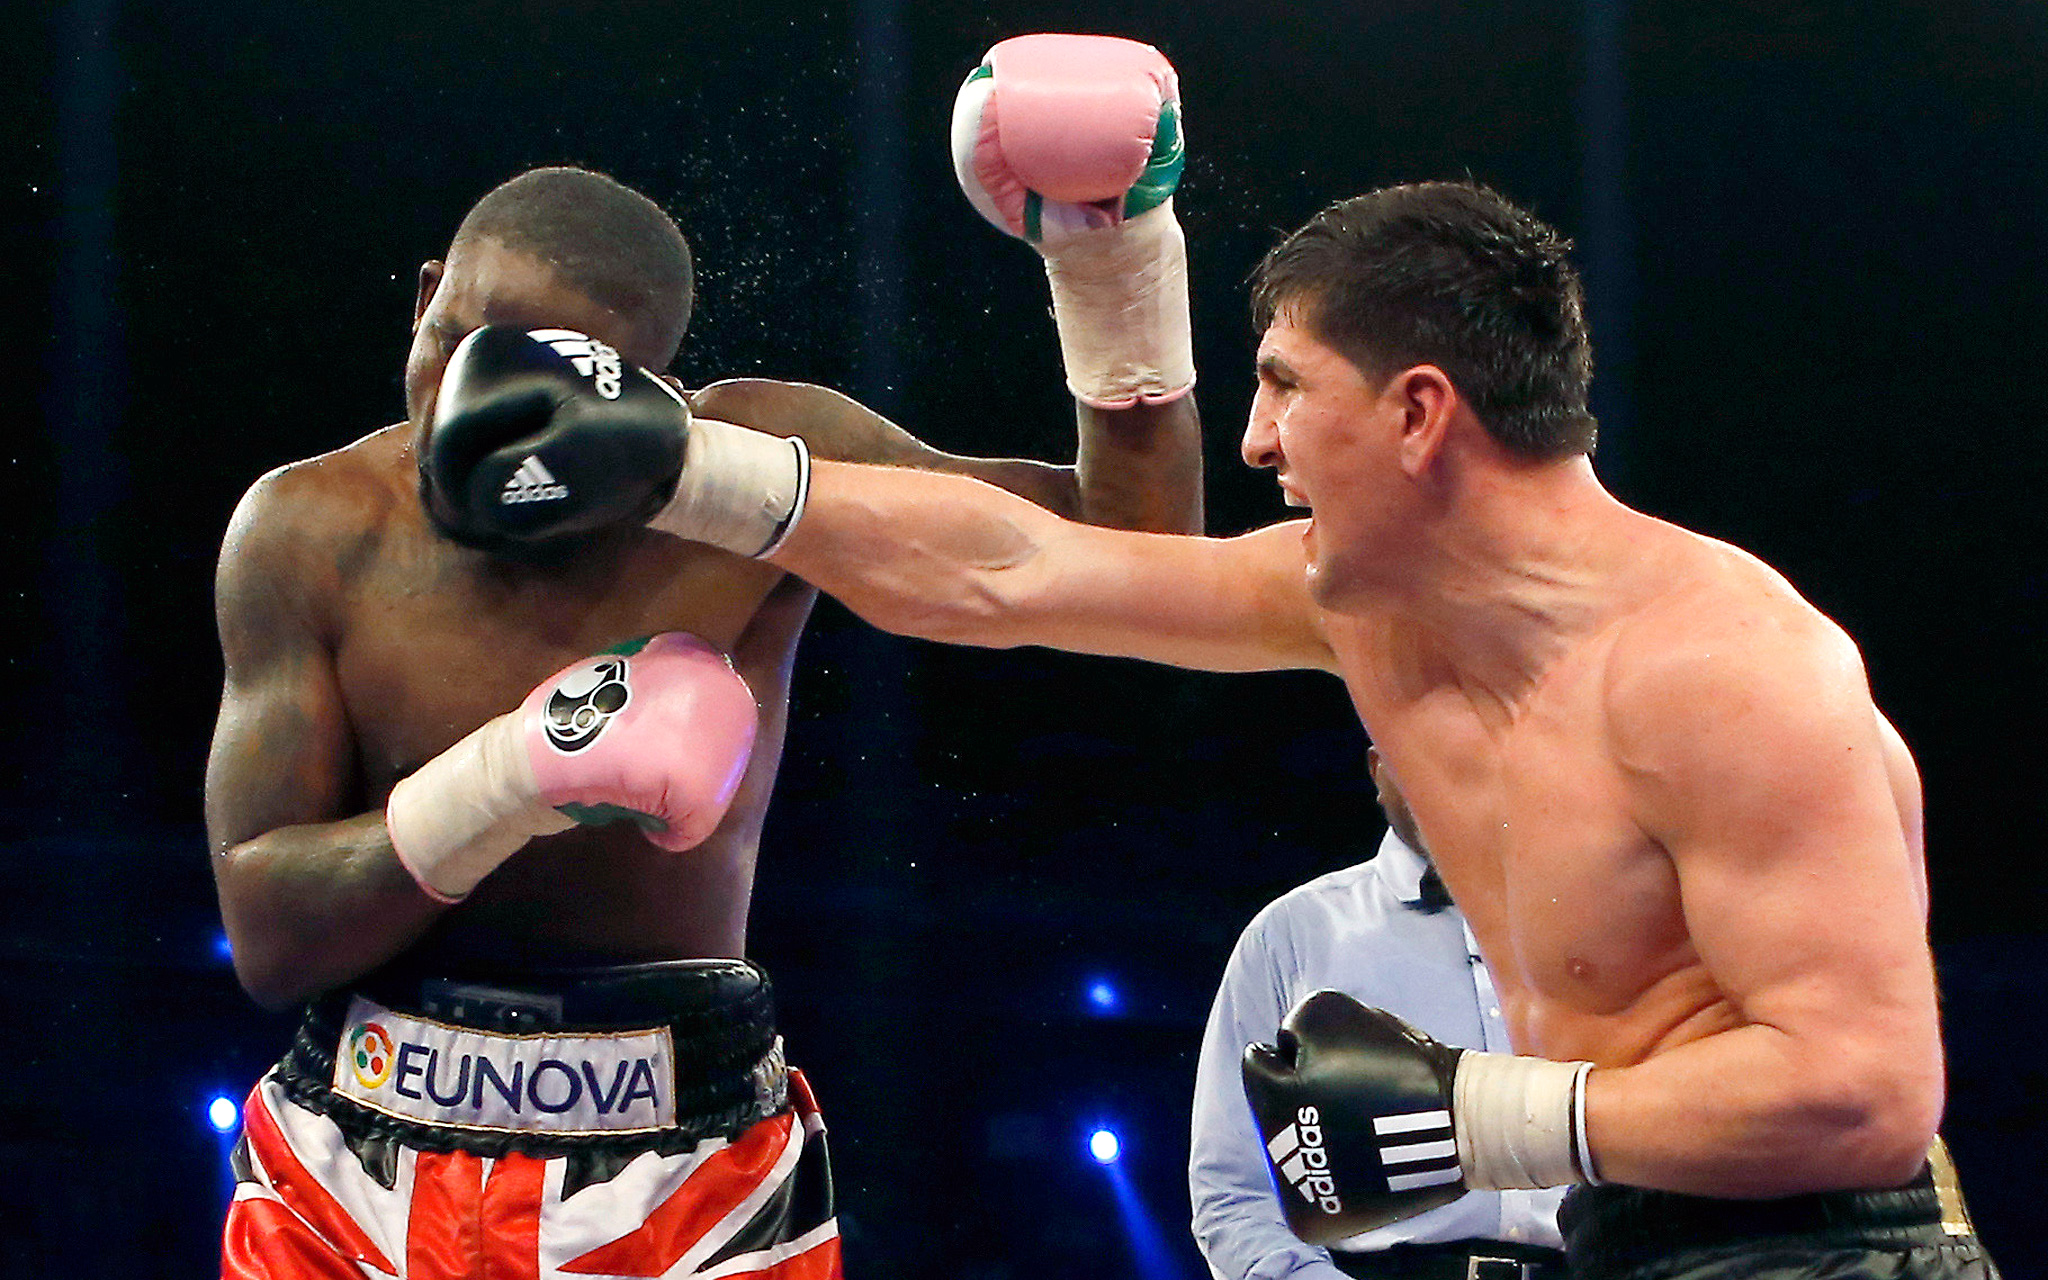 Marco Huck lands a punch to Ola Afolabi